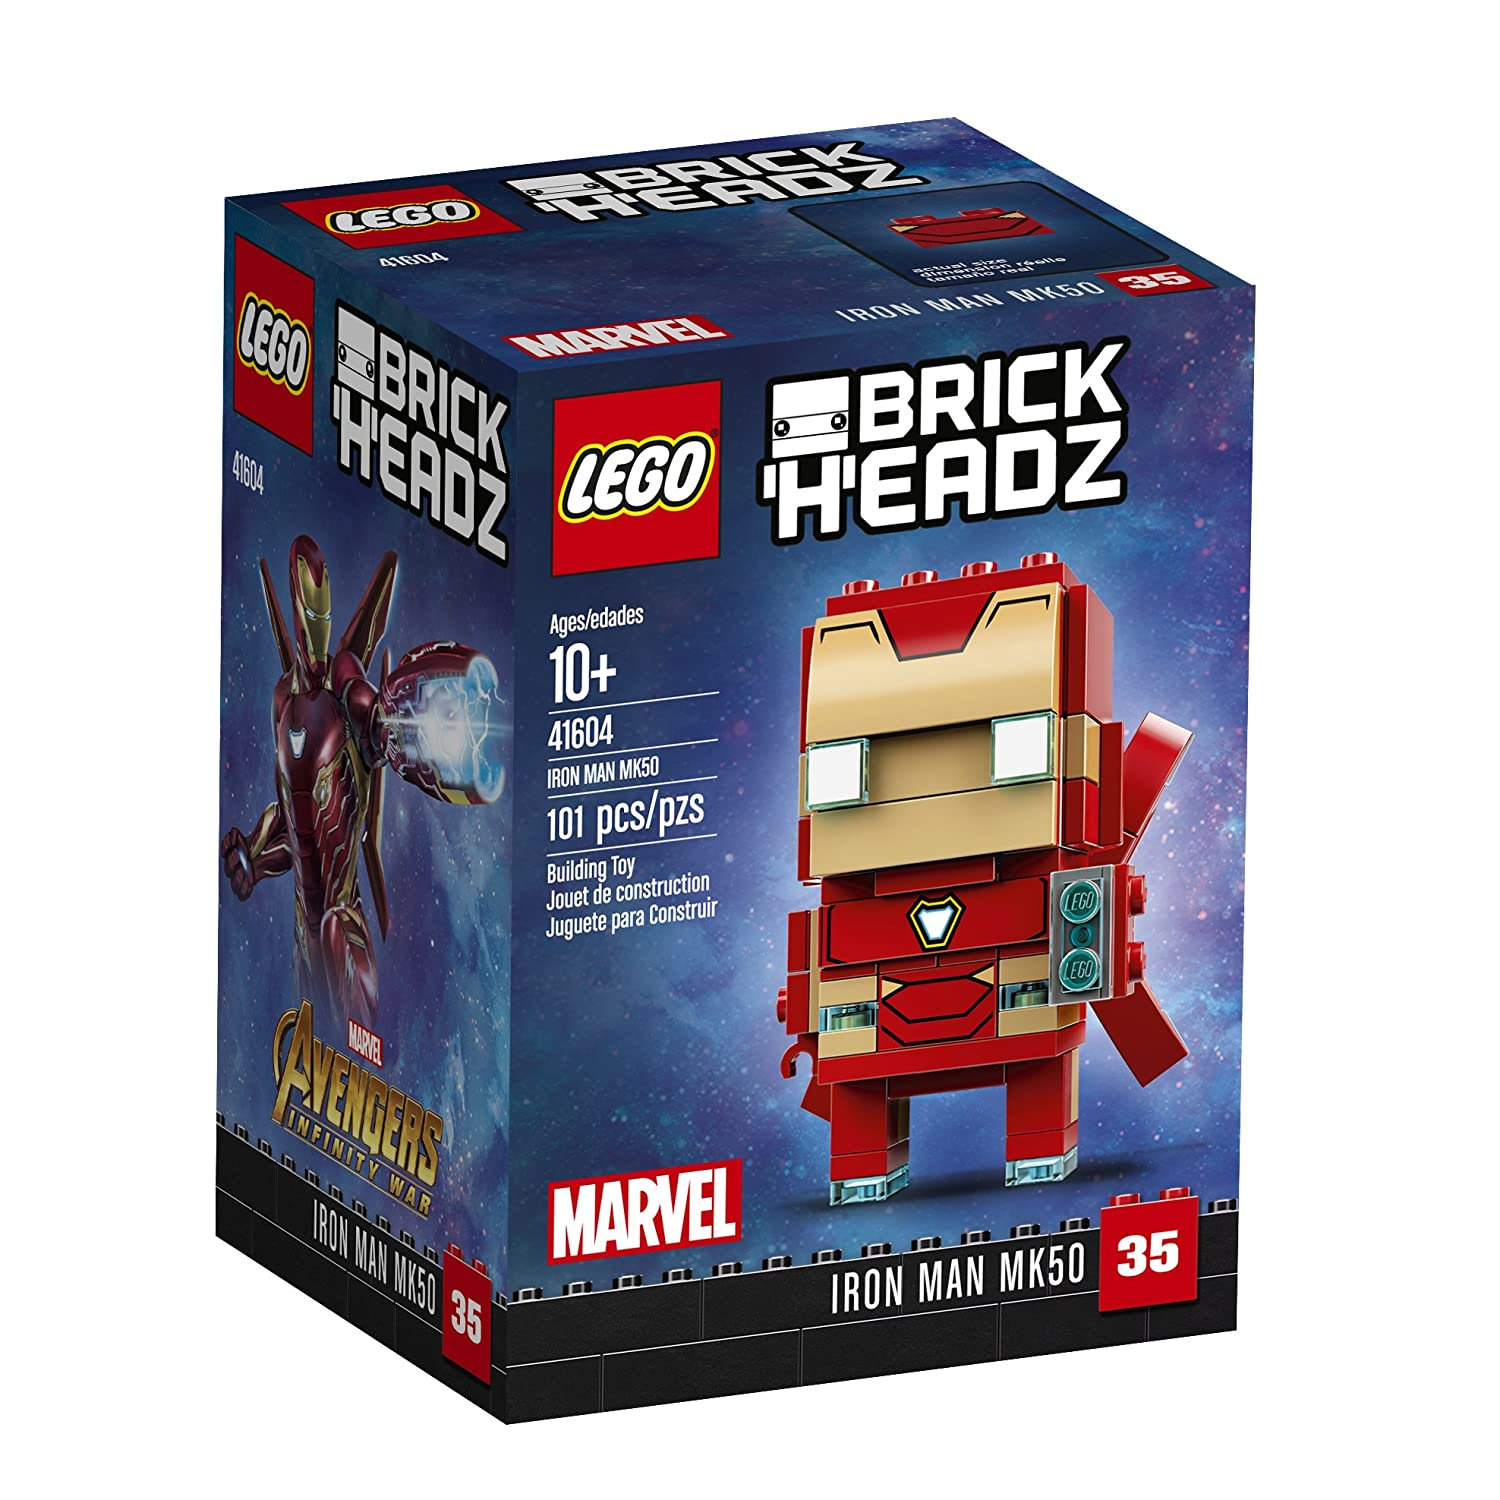 Top 11 Best Lego Brickheadz Reviews in 2019 8